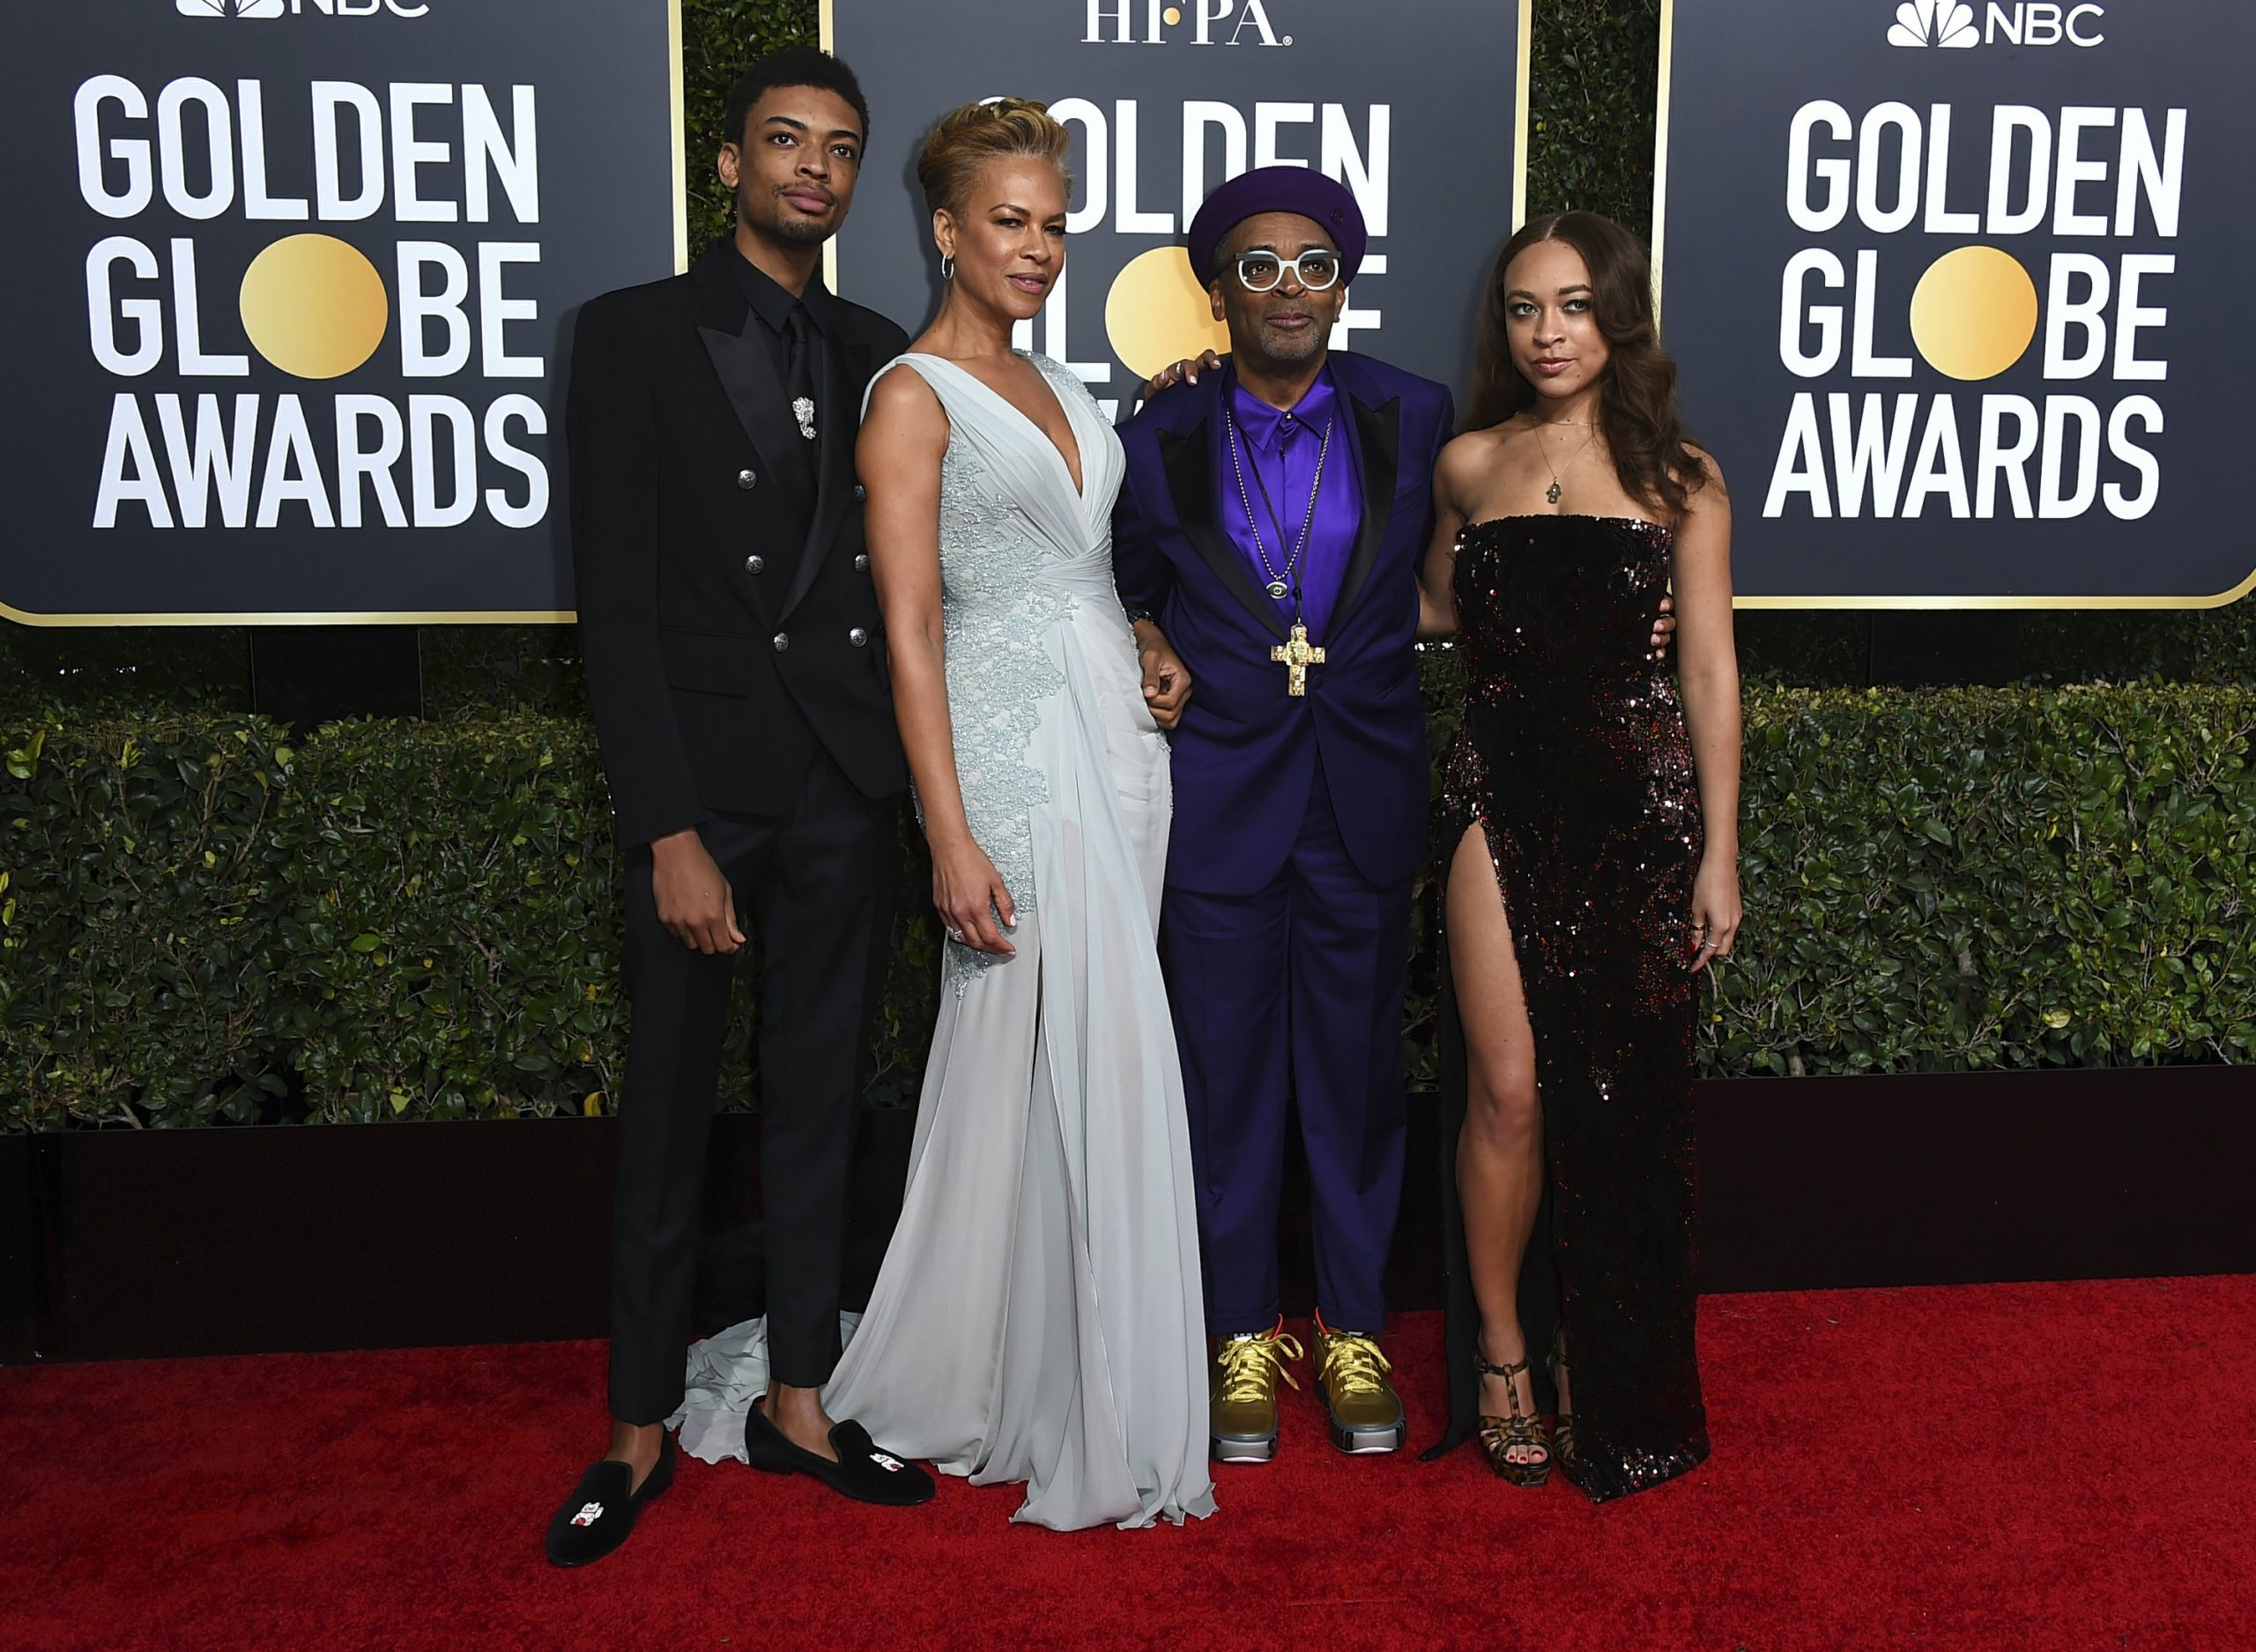 Spike Lee's children appointed Golden Globe ambassadors